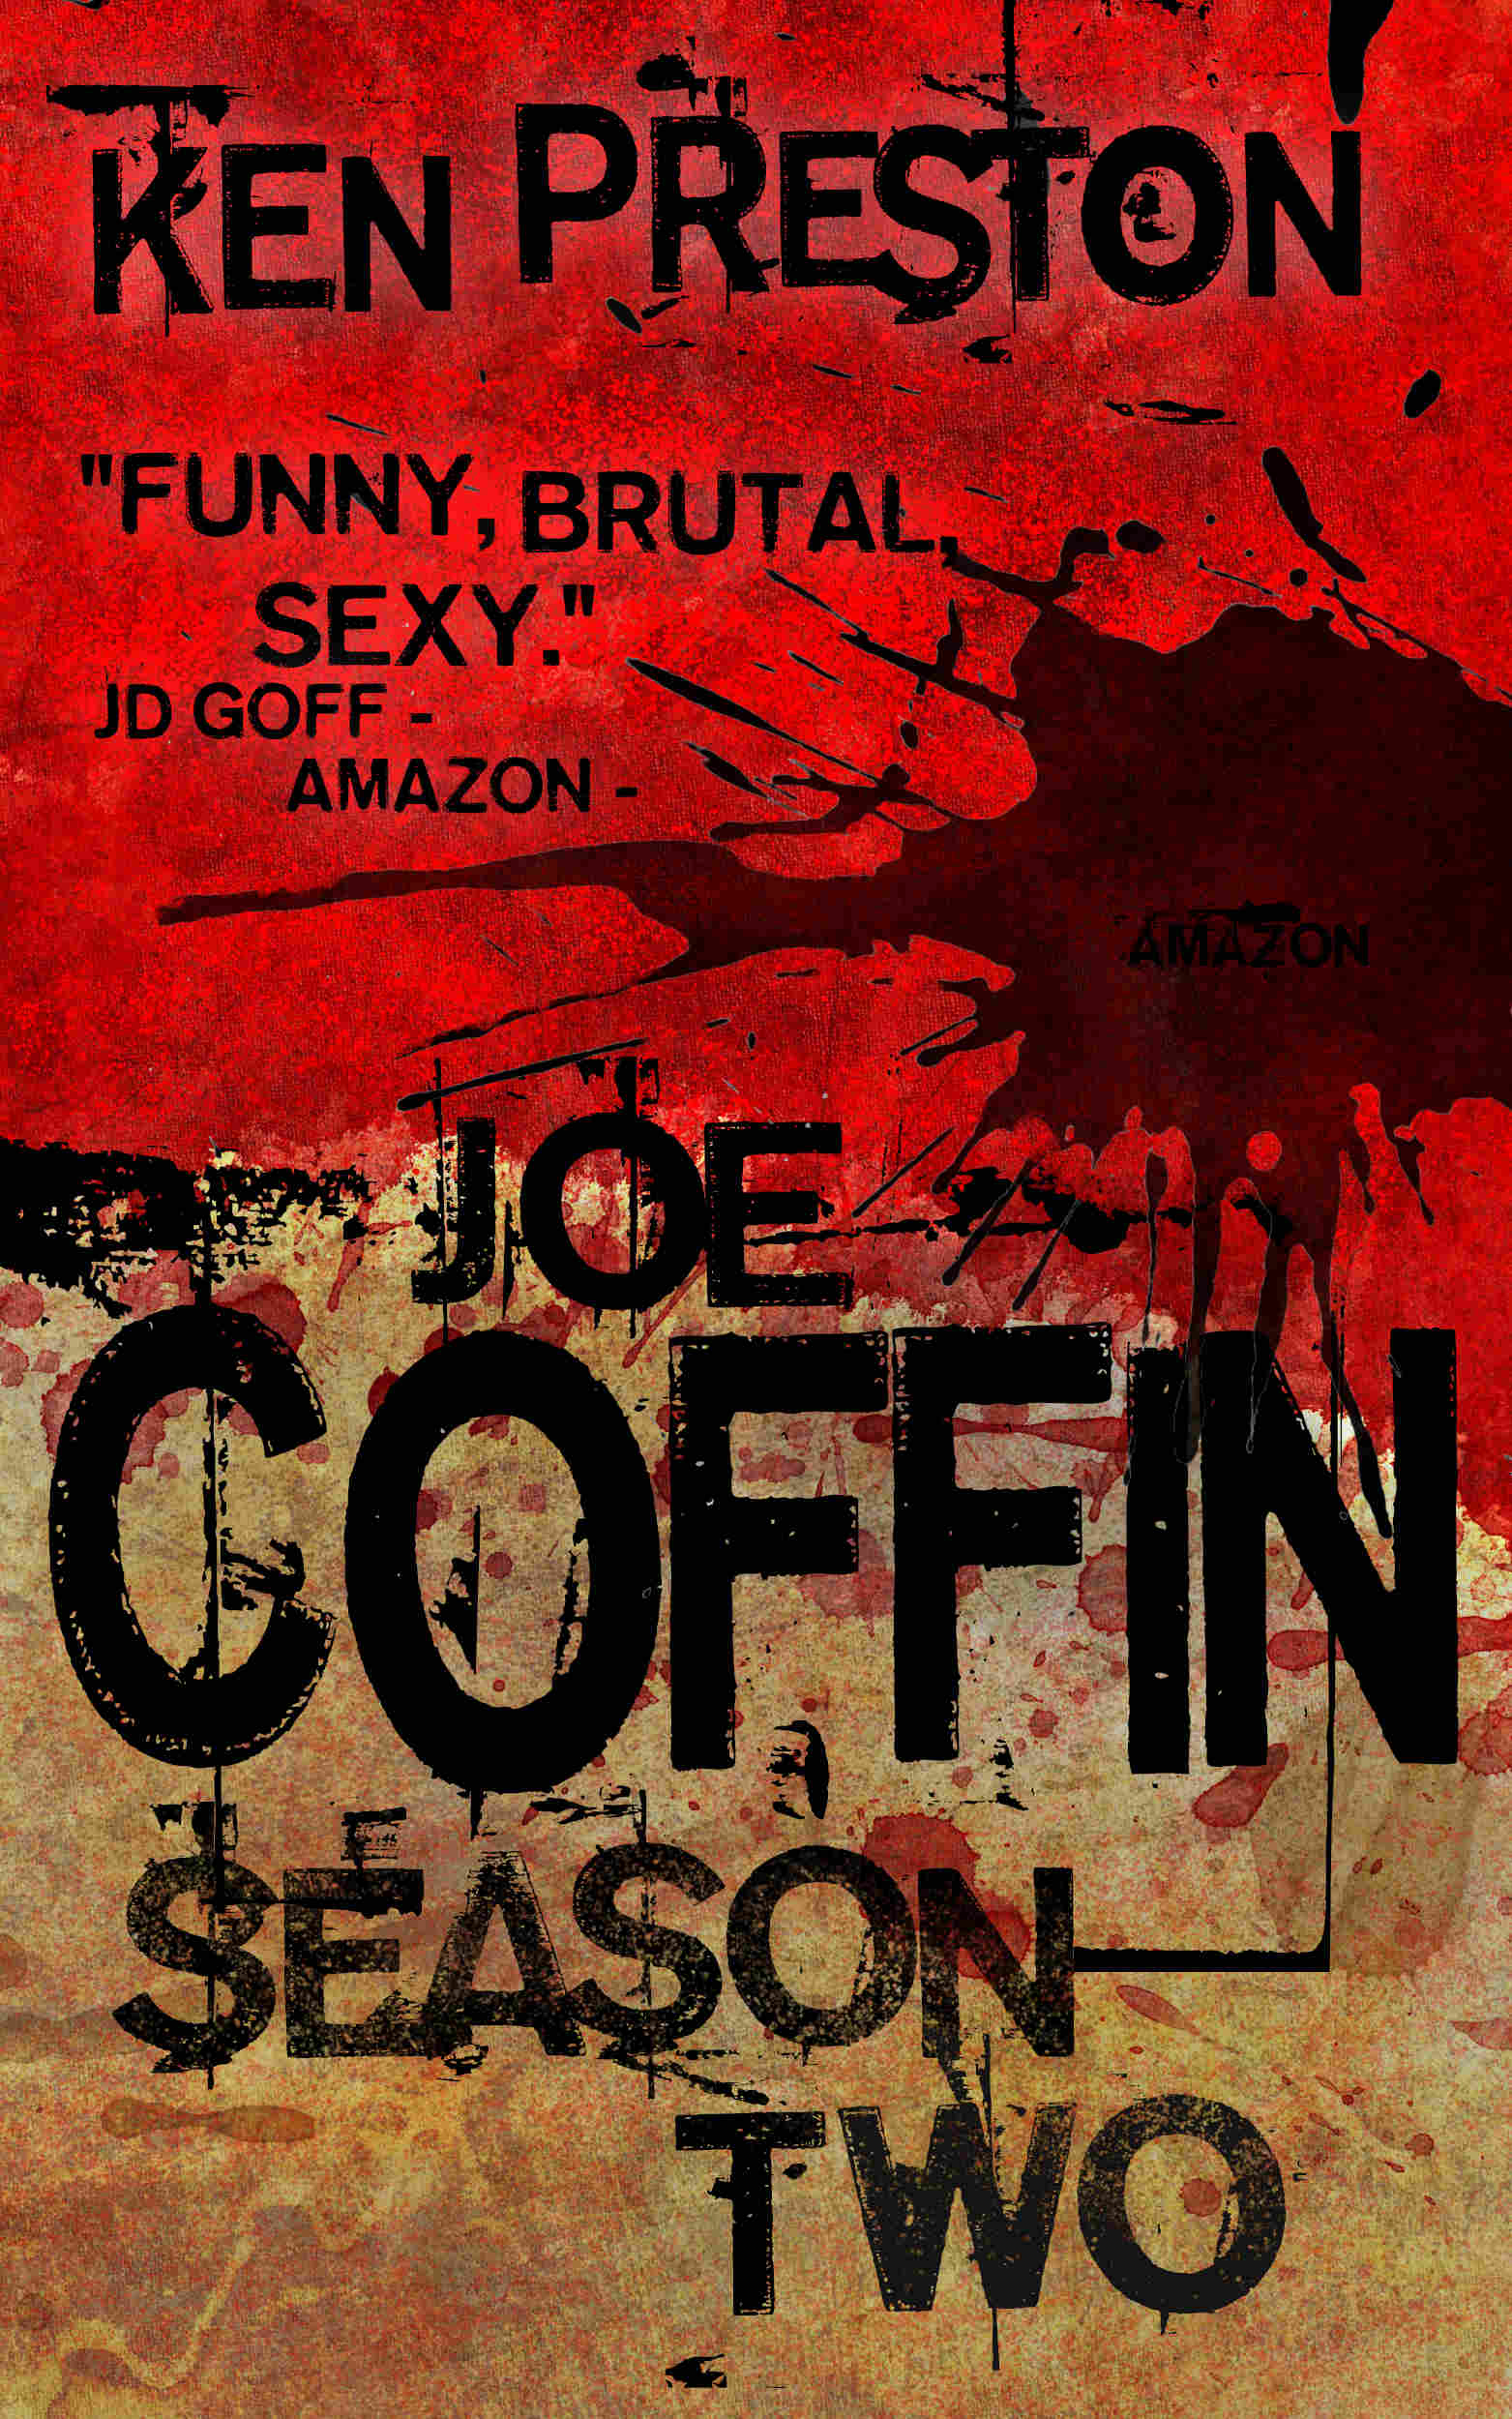 Joe Coffin Season Two Book Cover